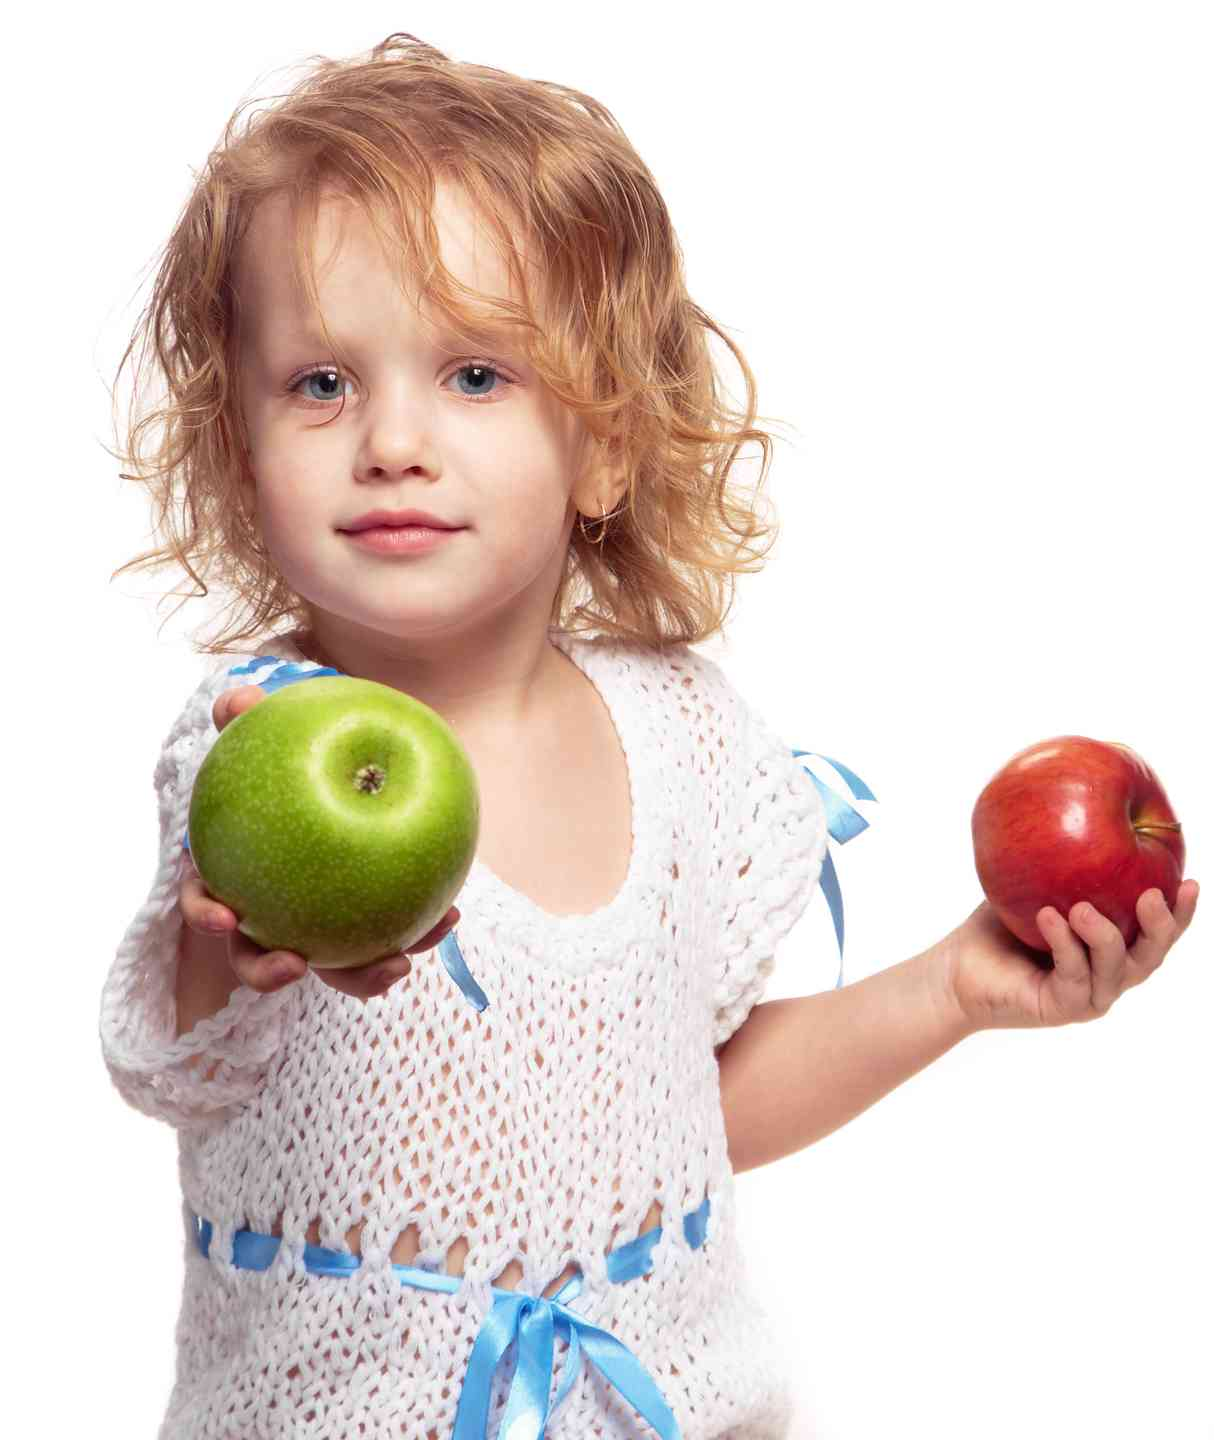 child holding out a green apple